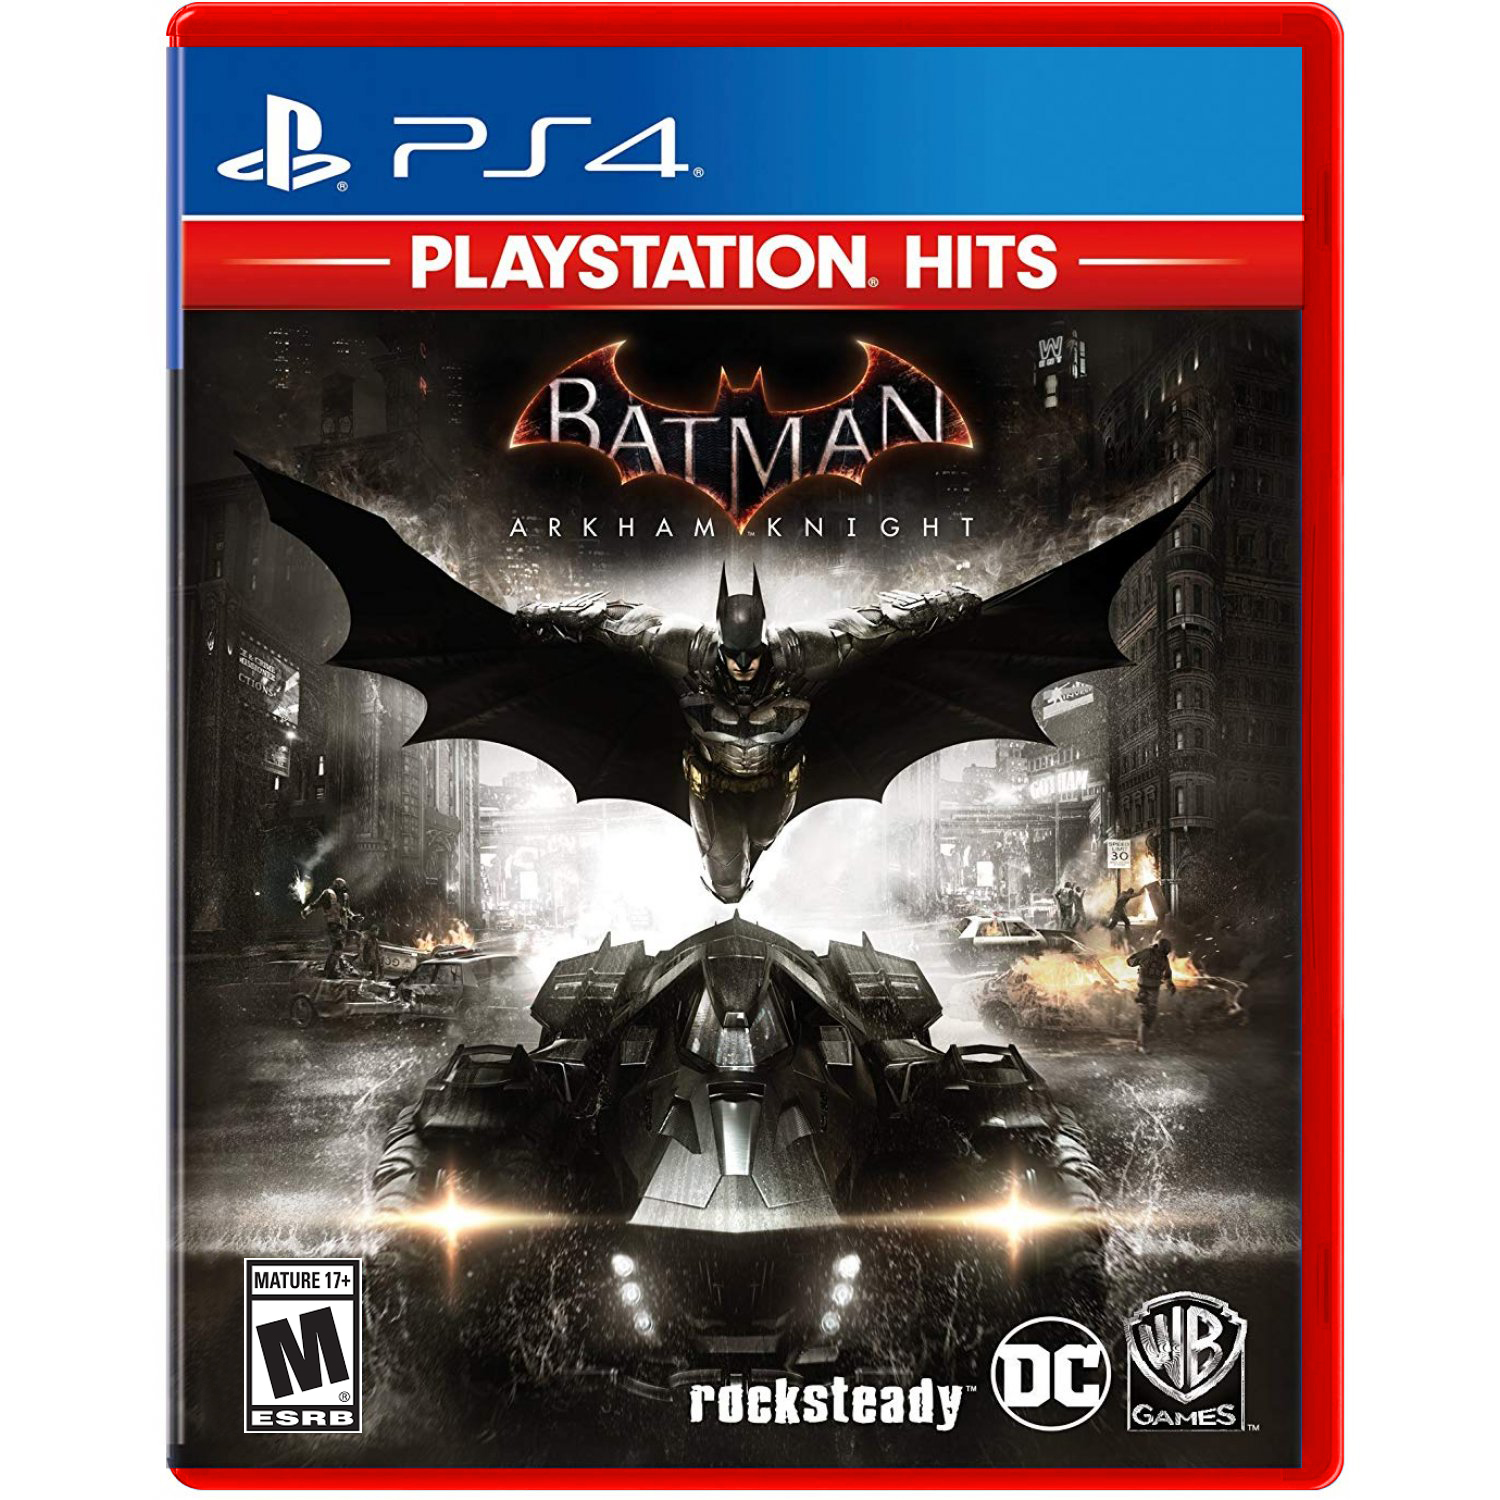 PlayStation Hits - Batman: Arkham Knight, Warner Bros, PlayStation 4, 883929648023